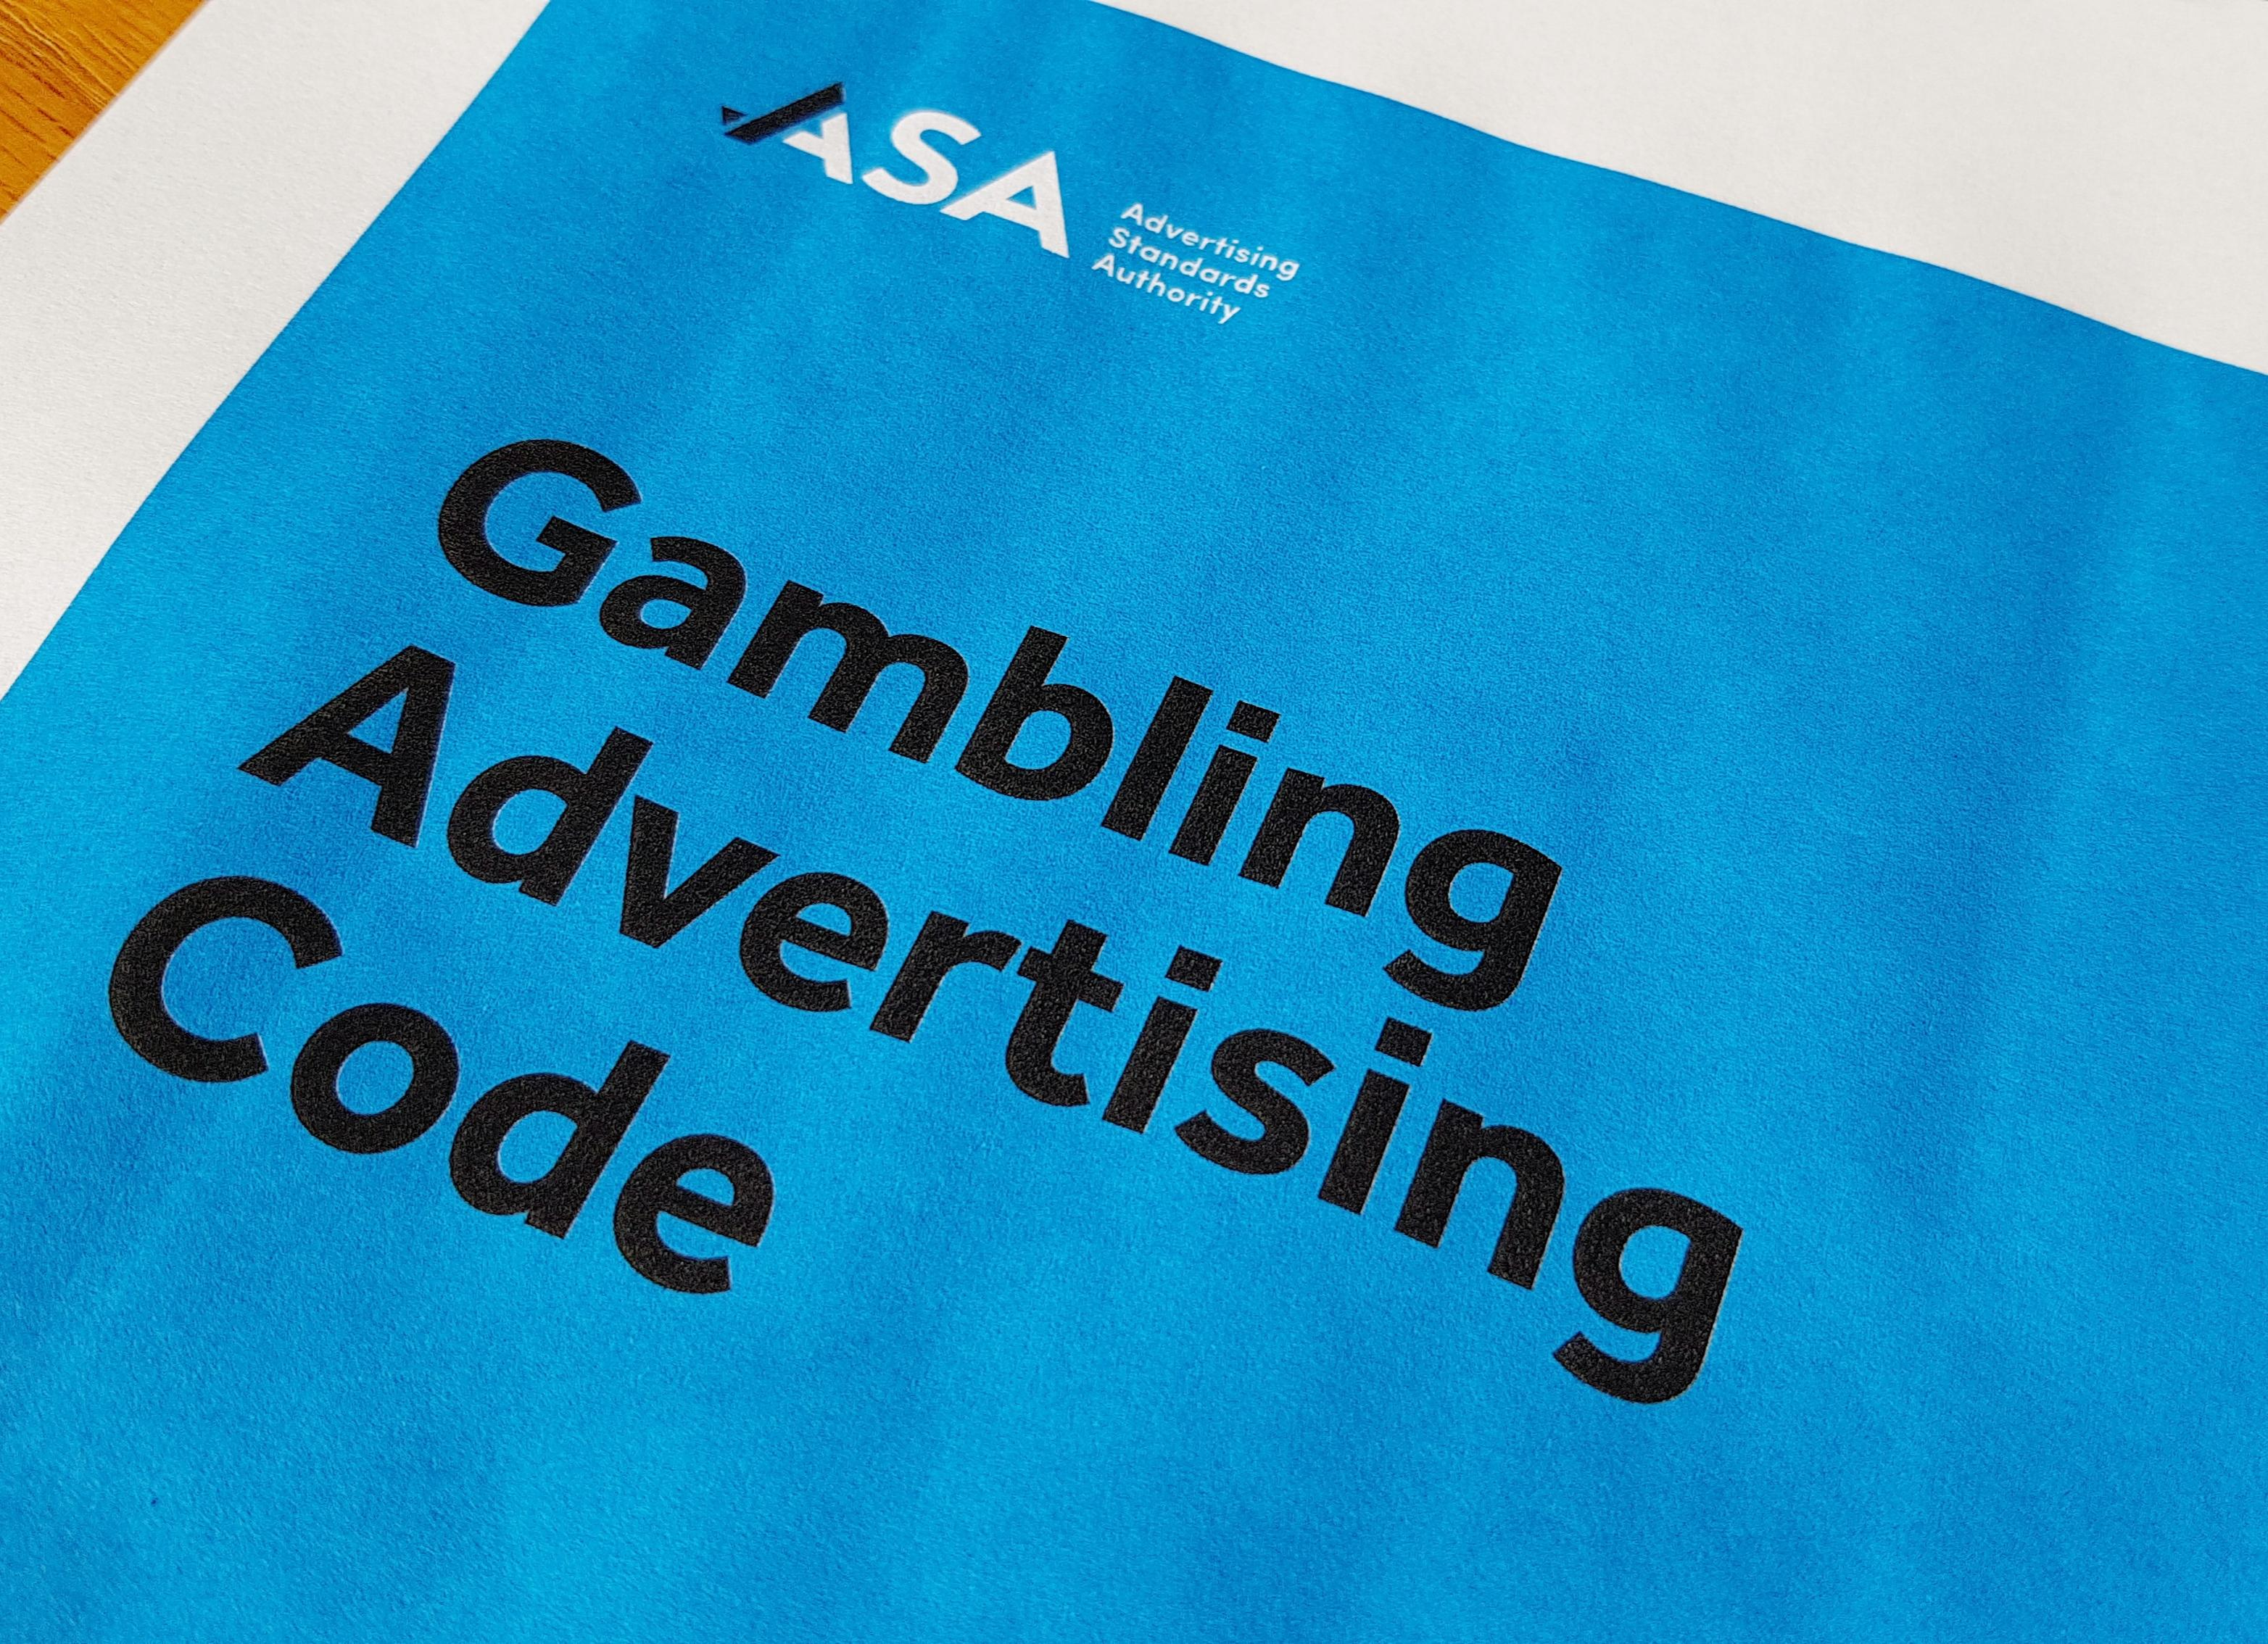 Media Release: New Code for Responsible Gambling Advertising